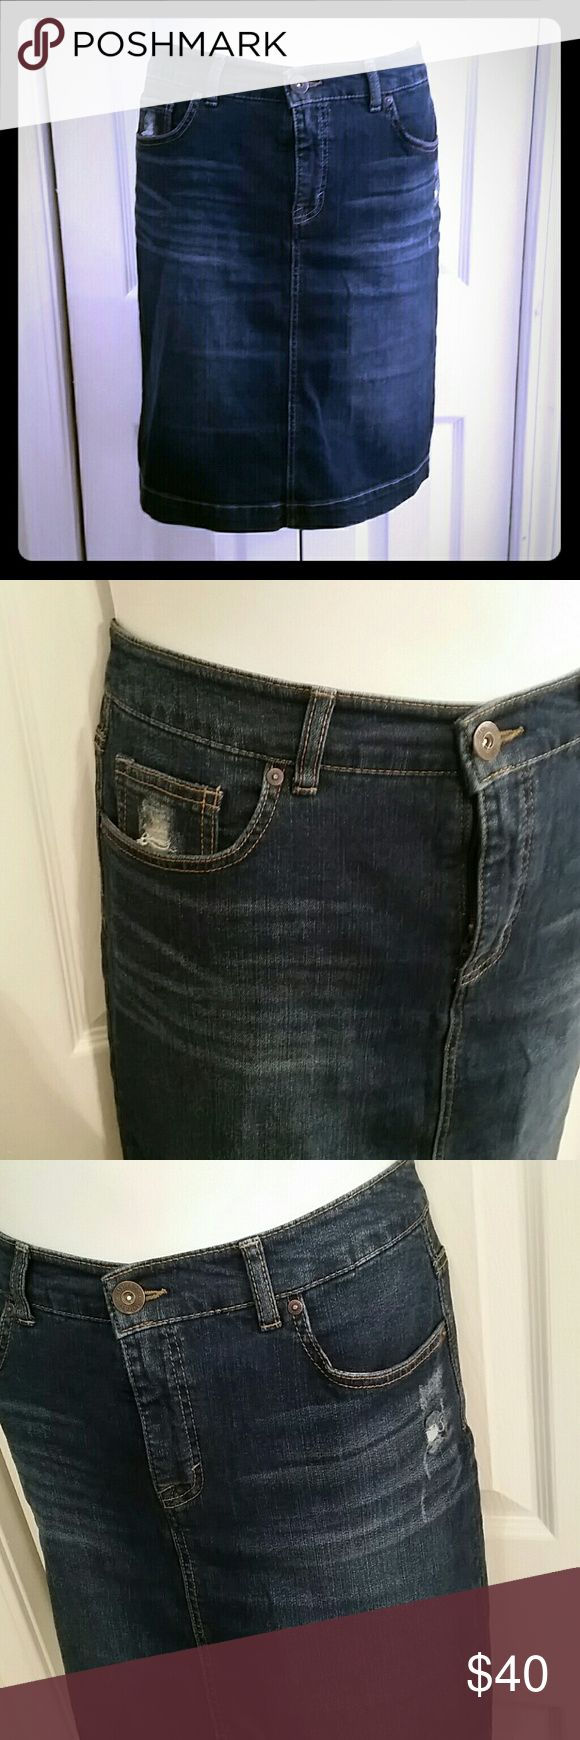 Distressed Jean Skirt Blue jean skirt from  Style & Co Denim Modern distressed style  Size 10 Waist 17 inches across lying flat 21 inches long Style & Co Skirts